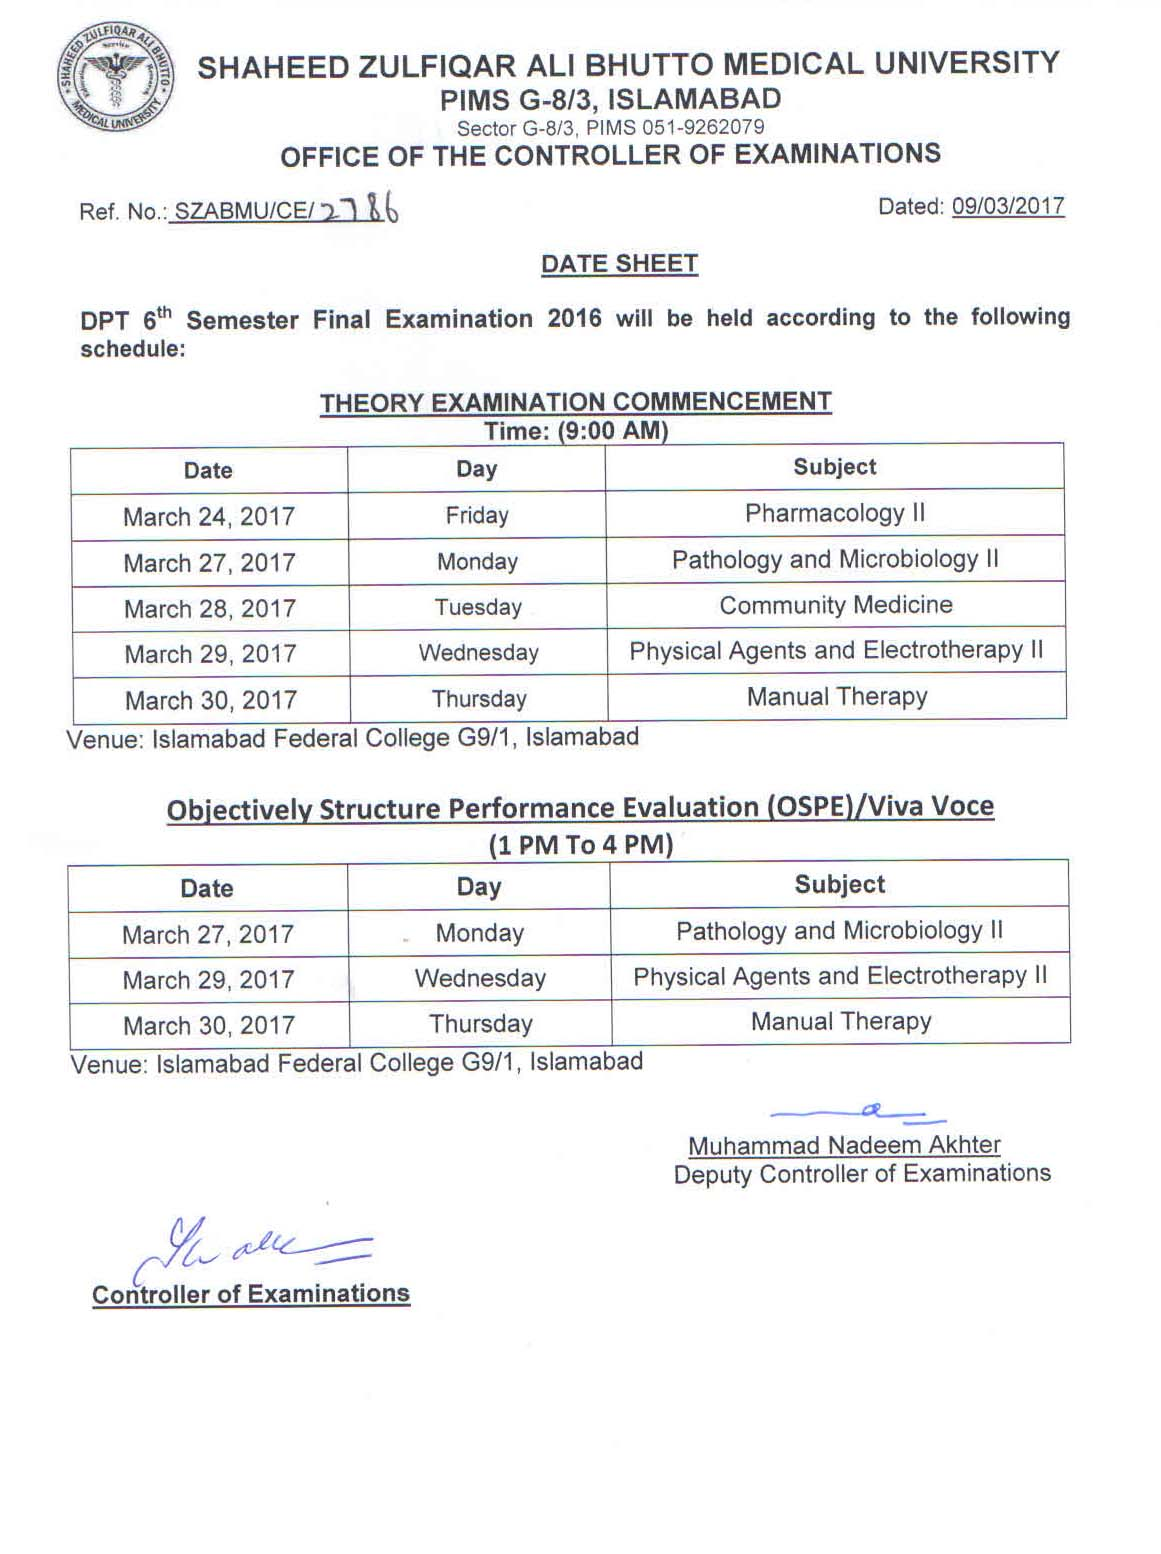 Date Sheet - DPT 4th and 6th Semester Final Exams 2016